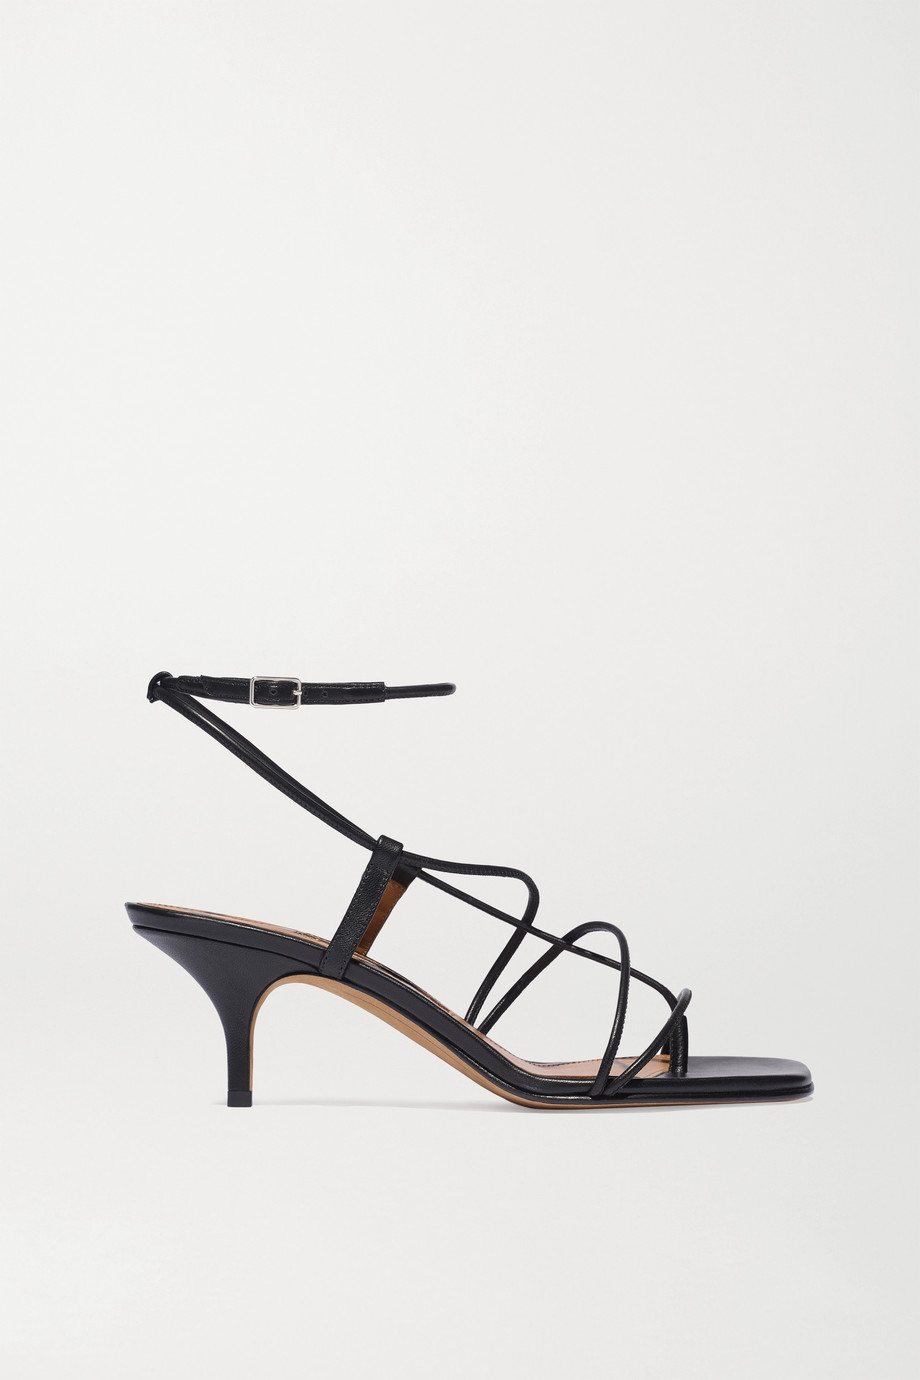 Emme Parsons Tobias leather sandals